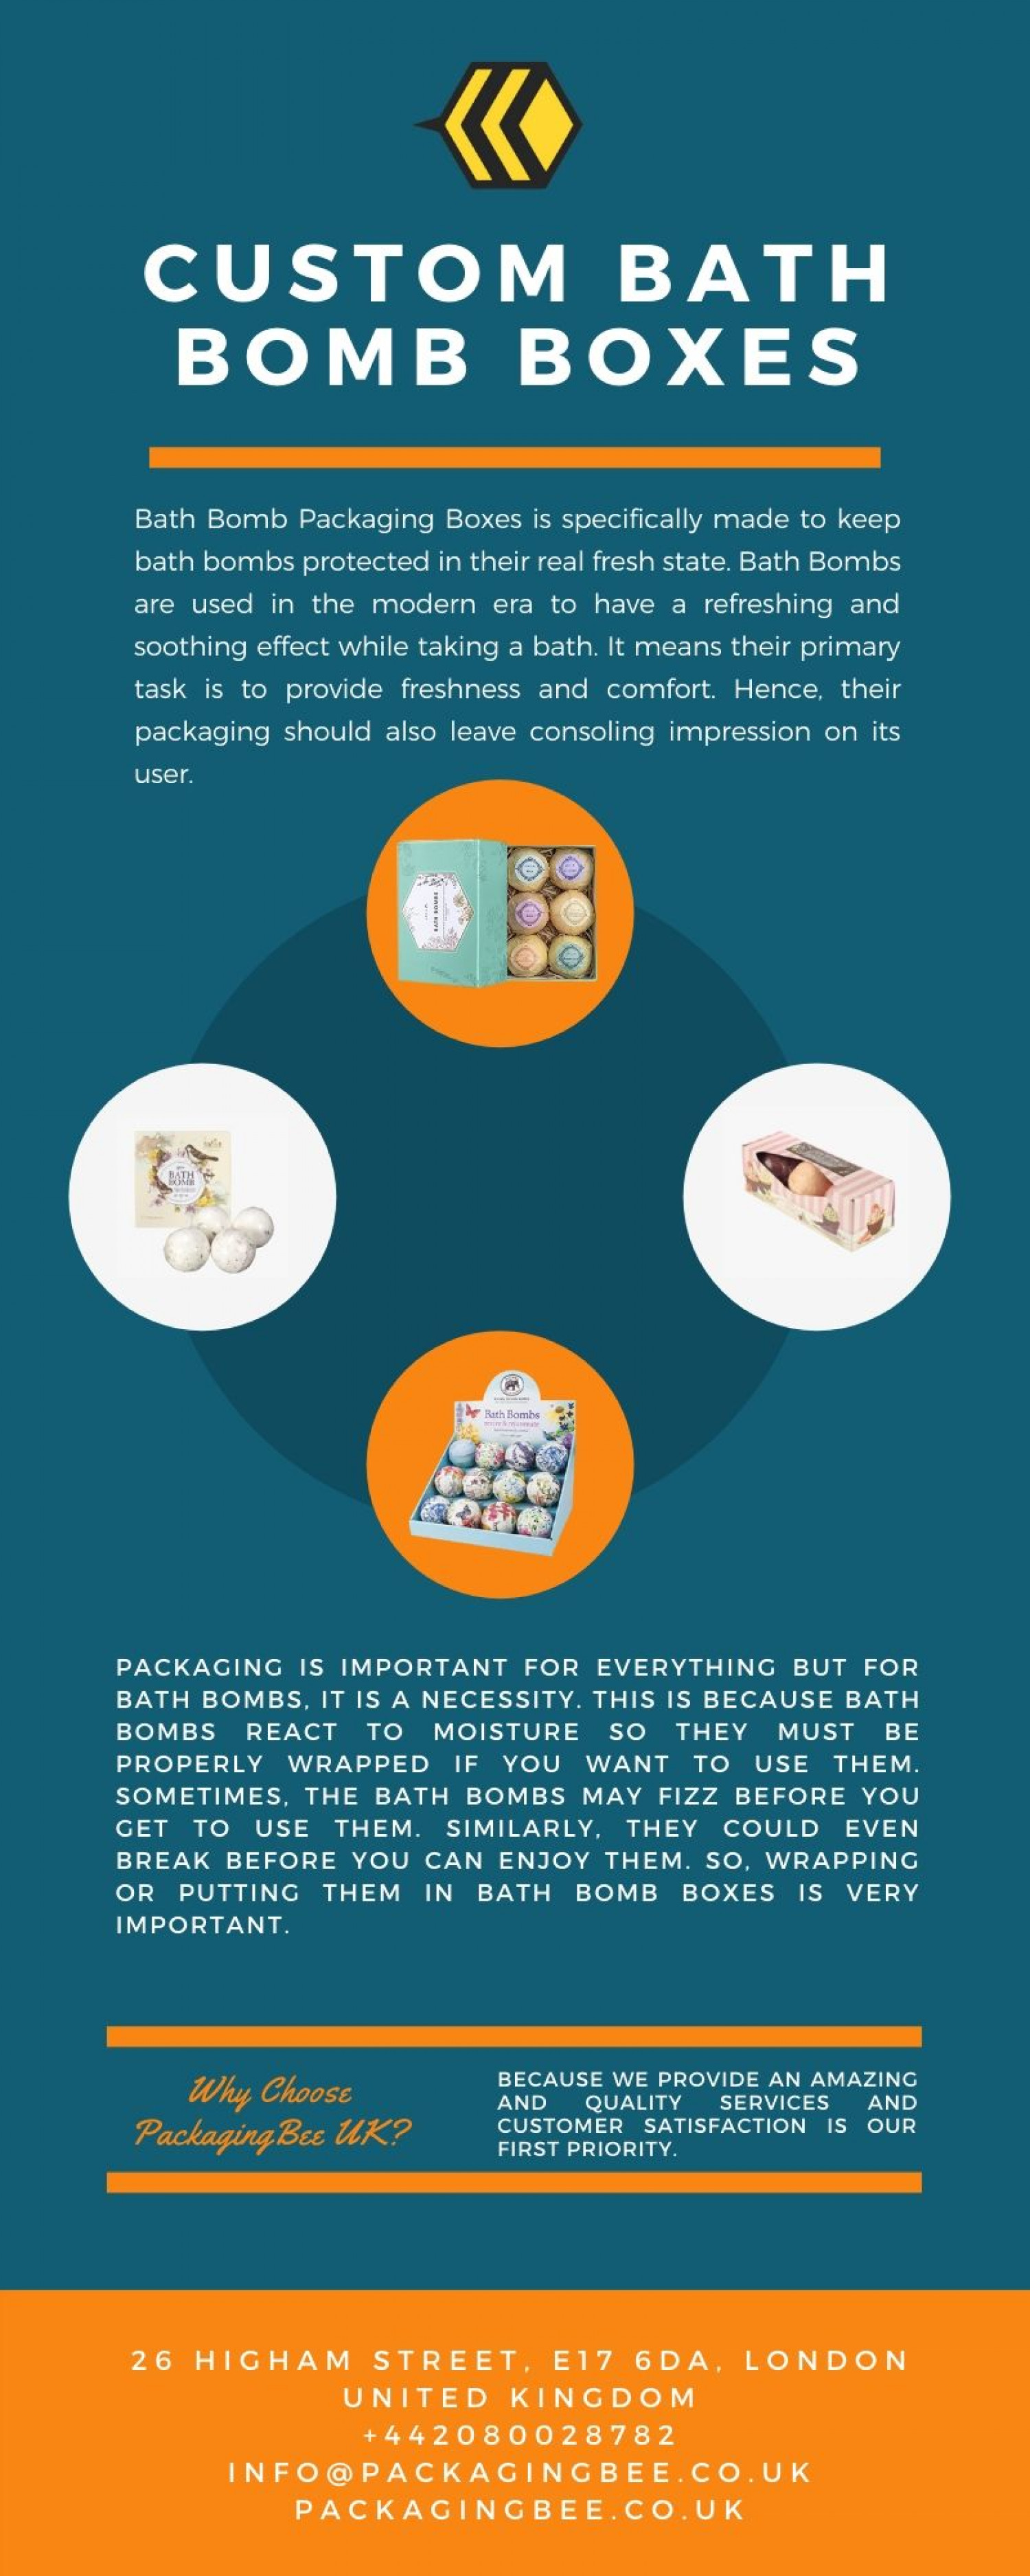 Custom Bath Bomb Boxes Infographic